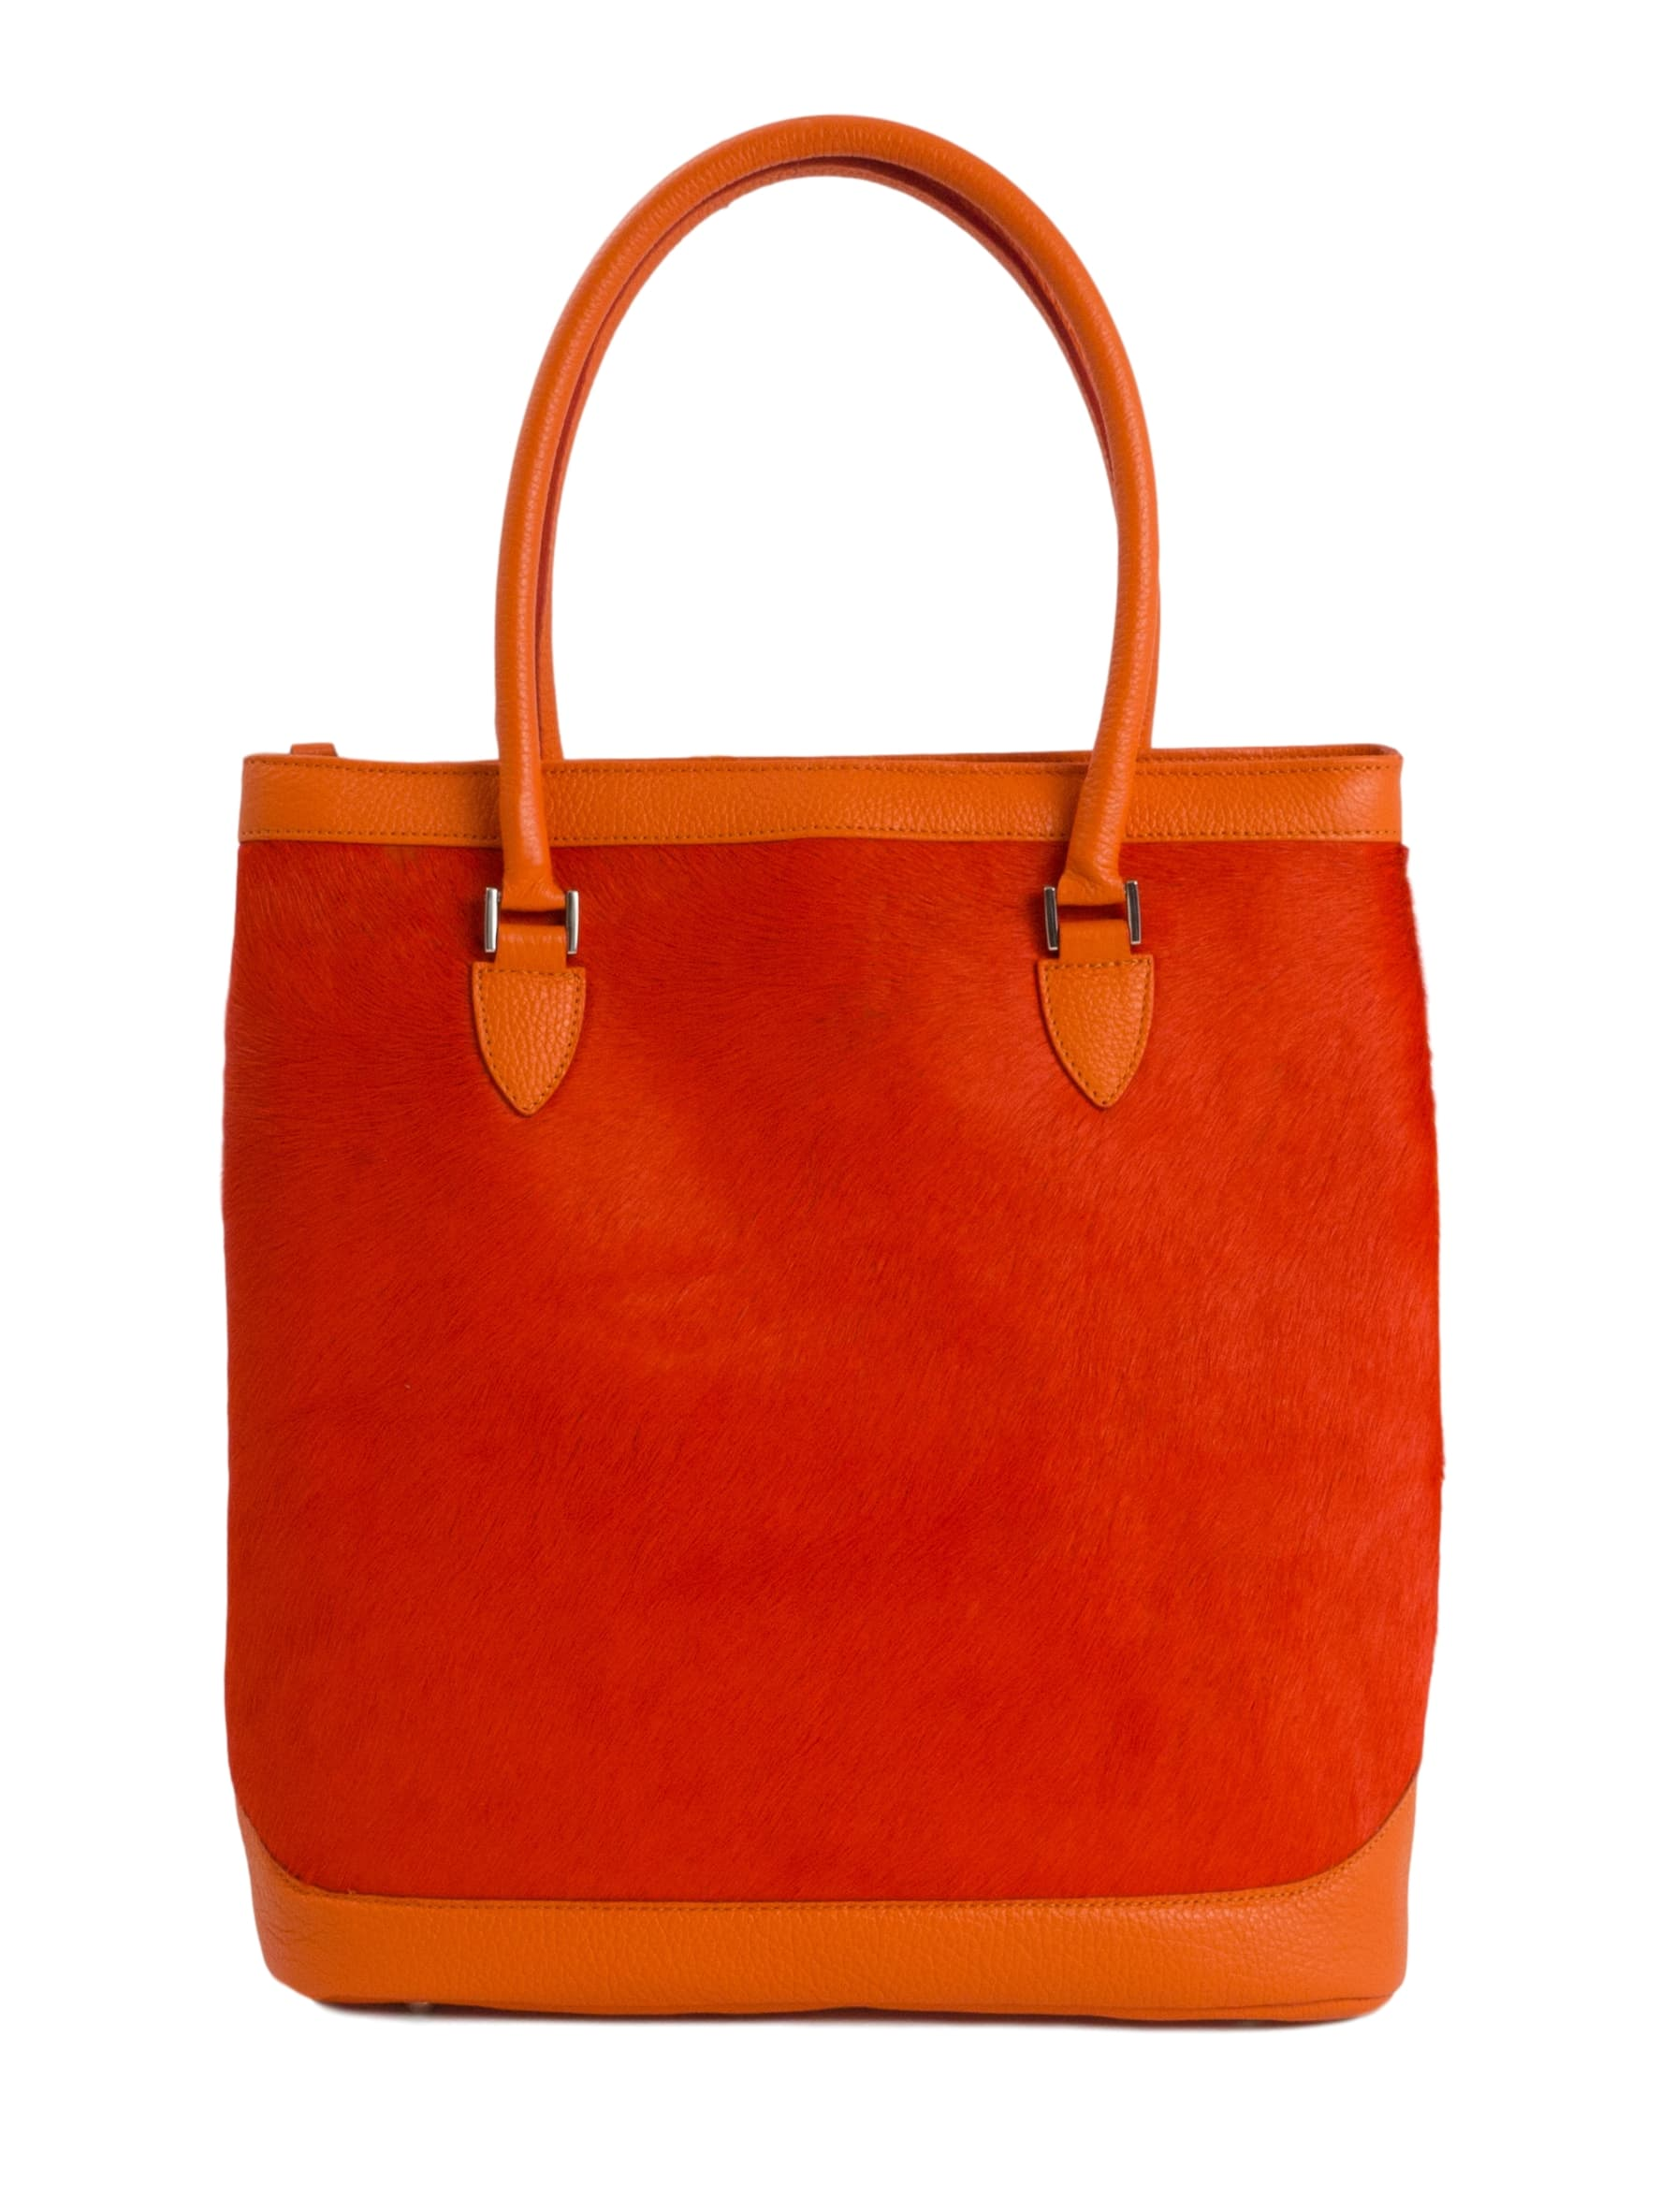 Orange calfskin furry tote bag